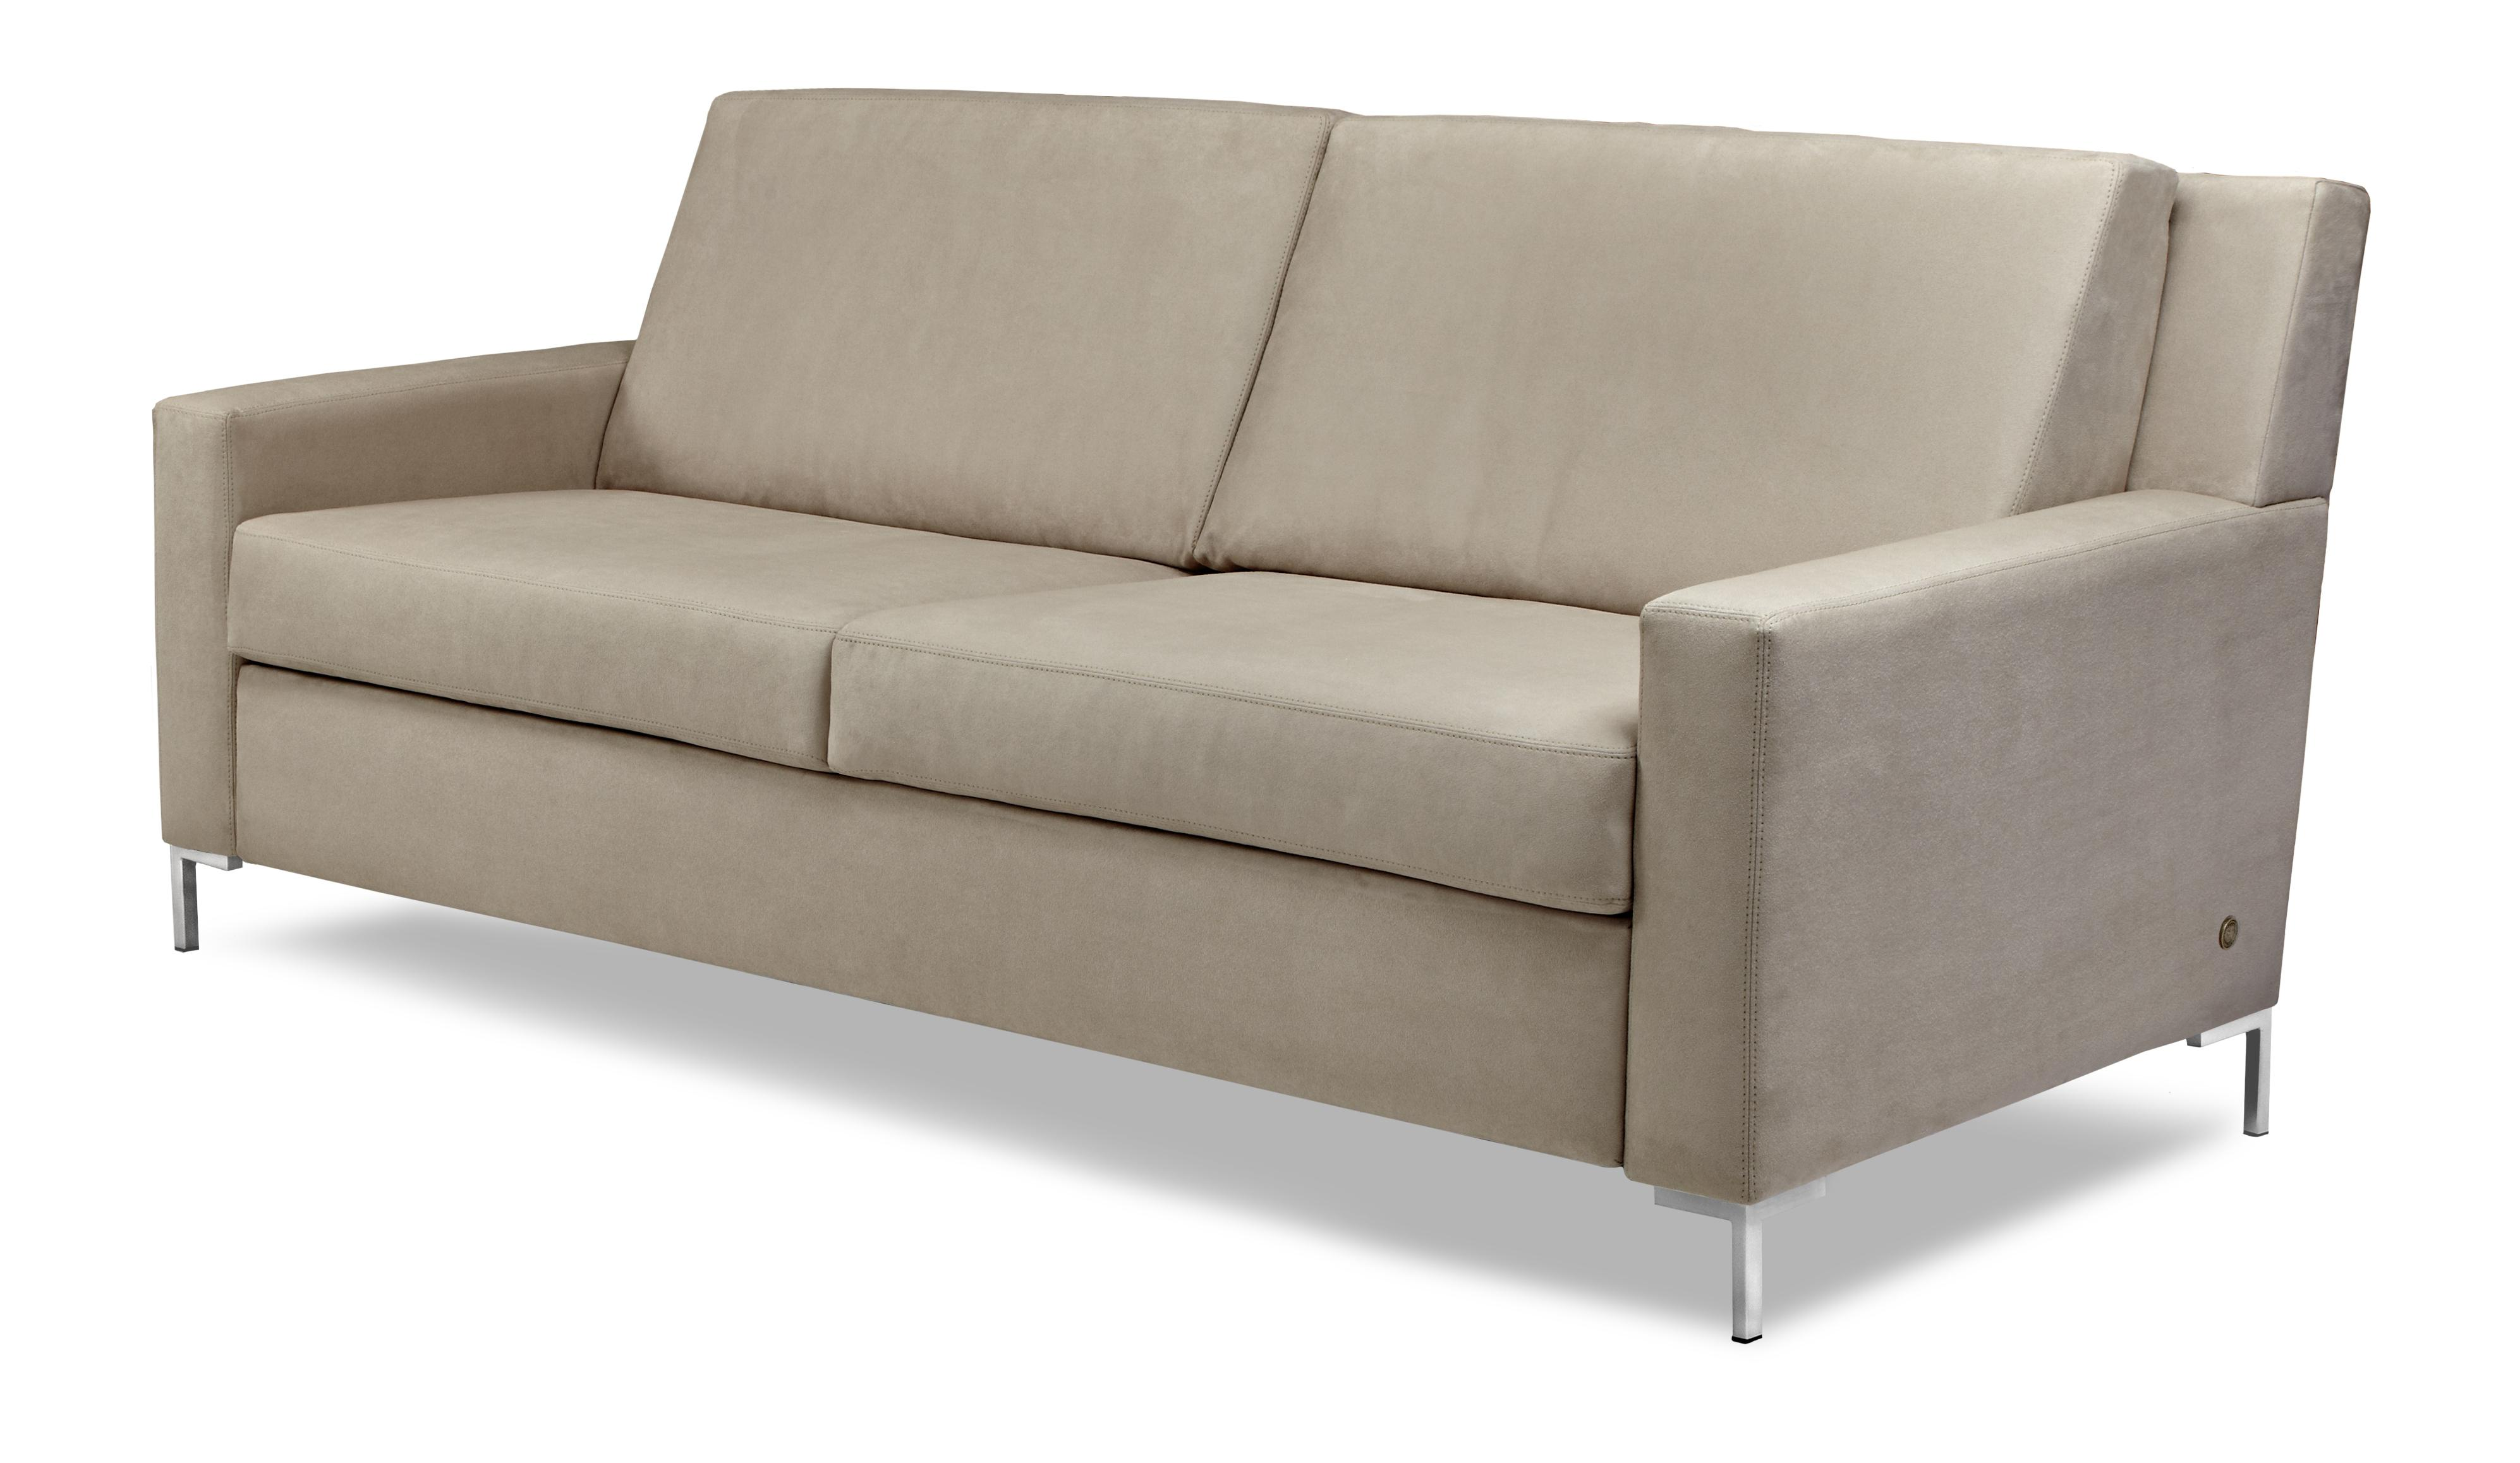 American Leather Comfort Sleeper Brynlee Track Arm Queen